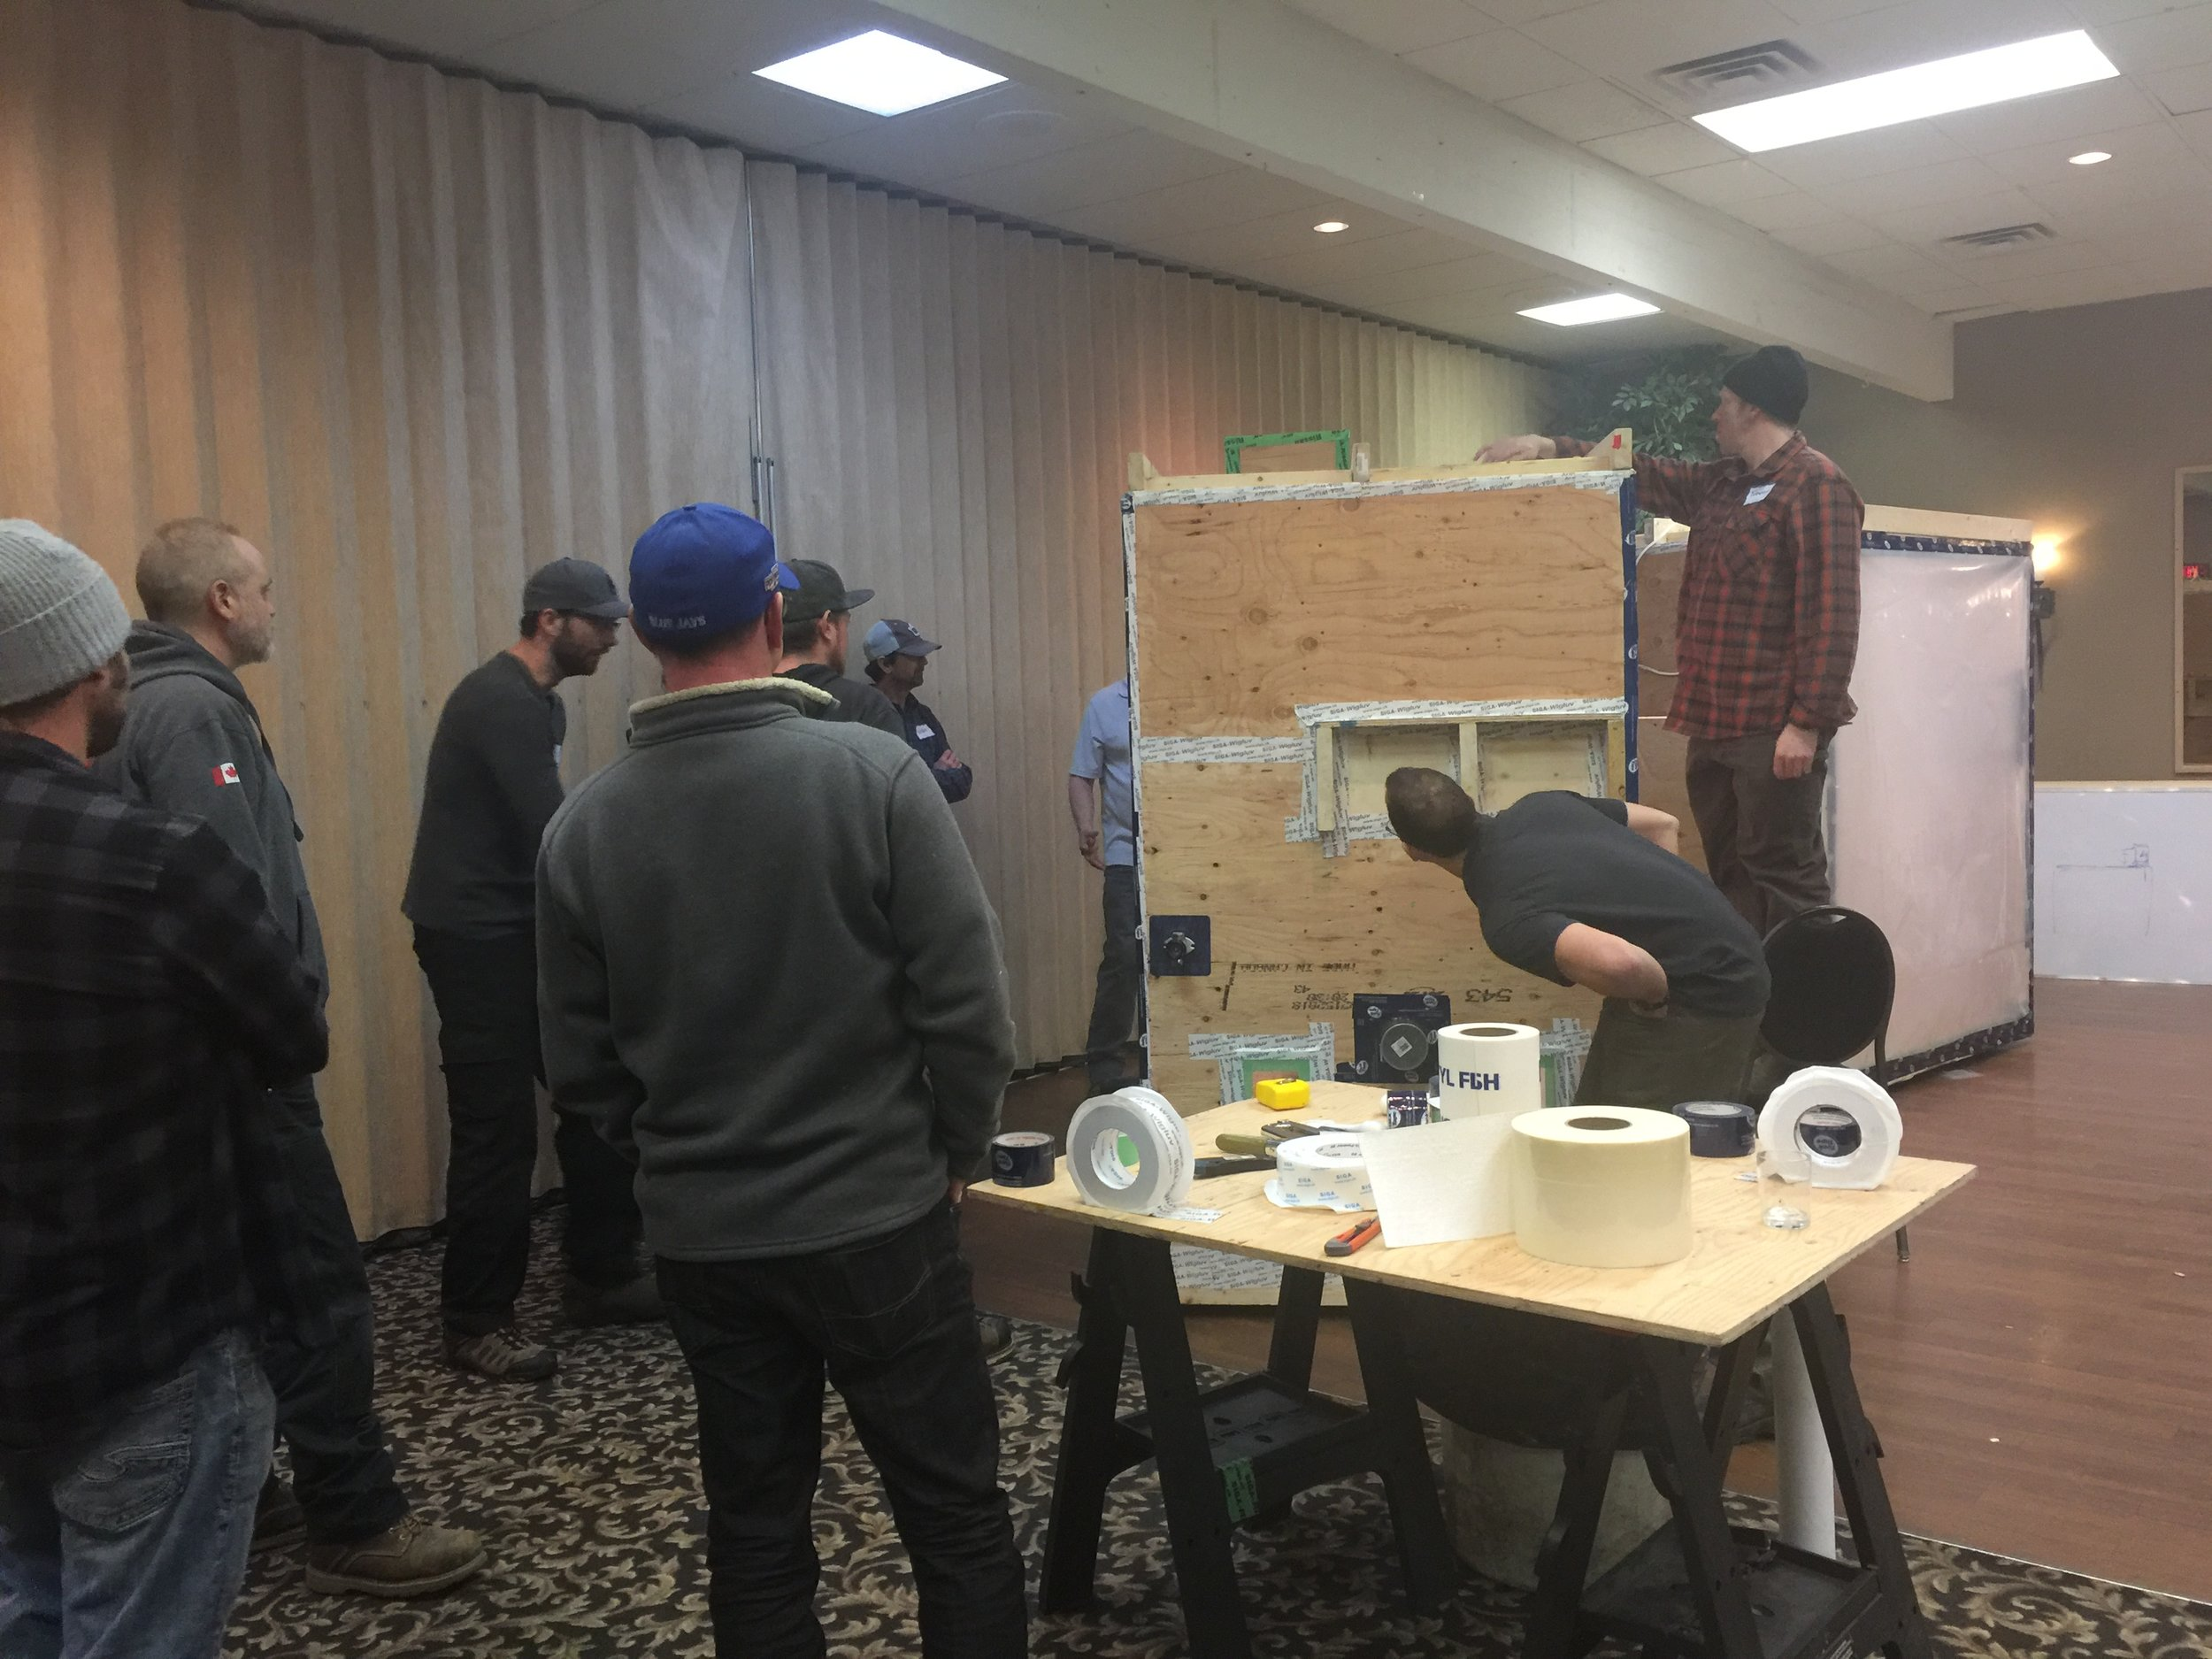 a mock blower-door test helps participants see the success (or failure) of their airtightness sealing during the class and understand how to remedy any deficiencies that are found. And, it's fun!